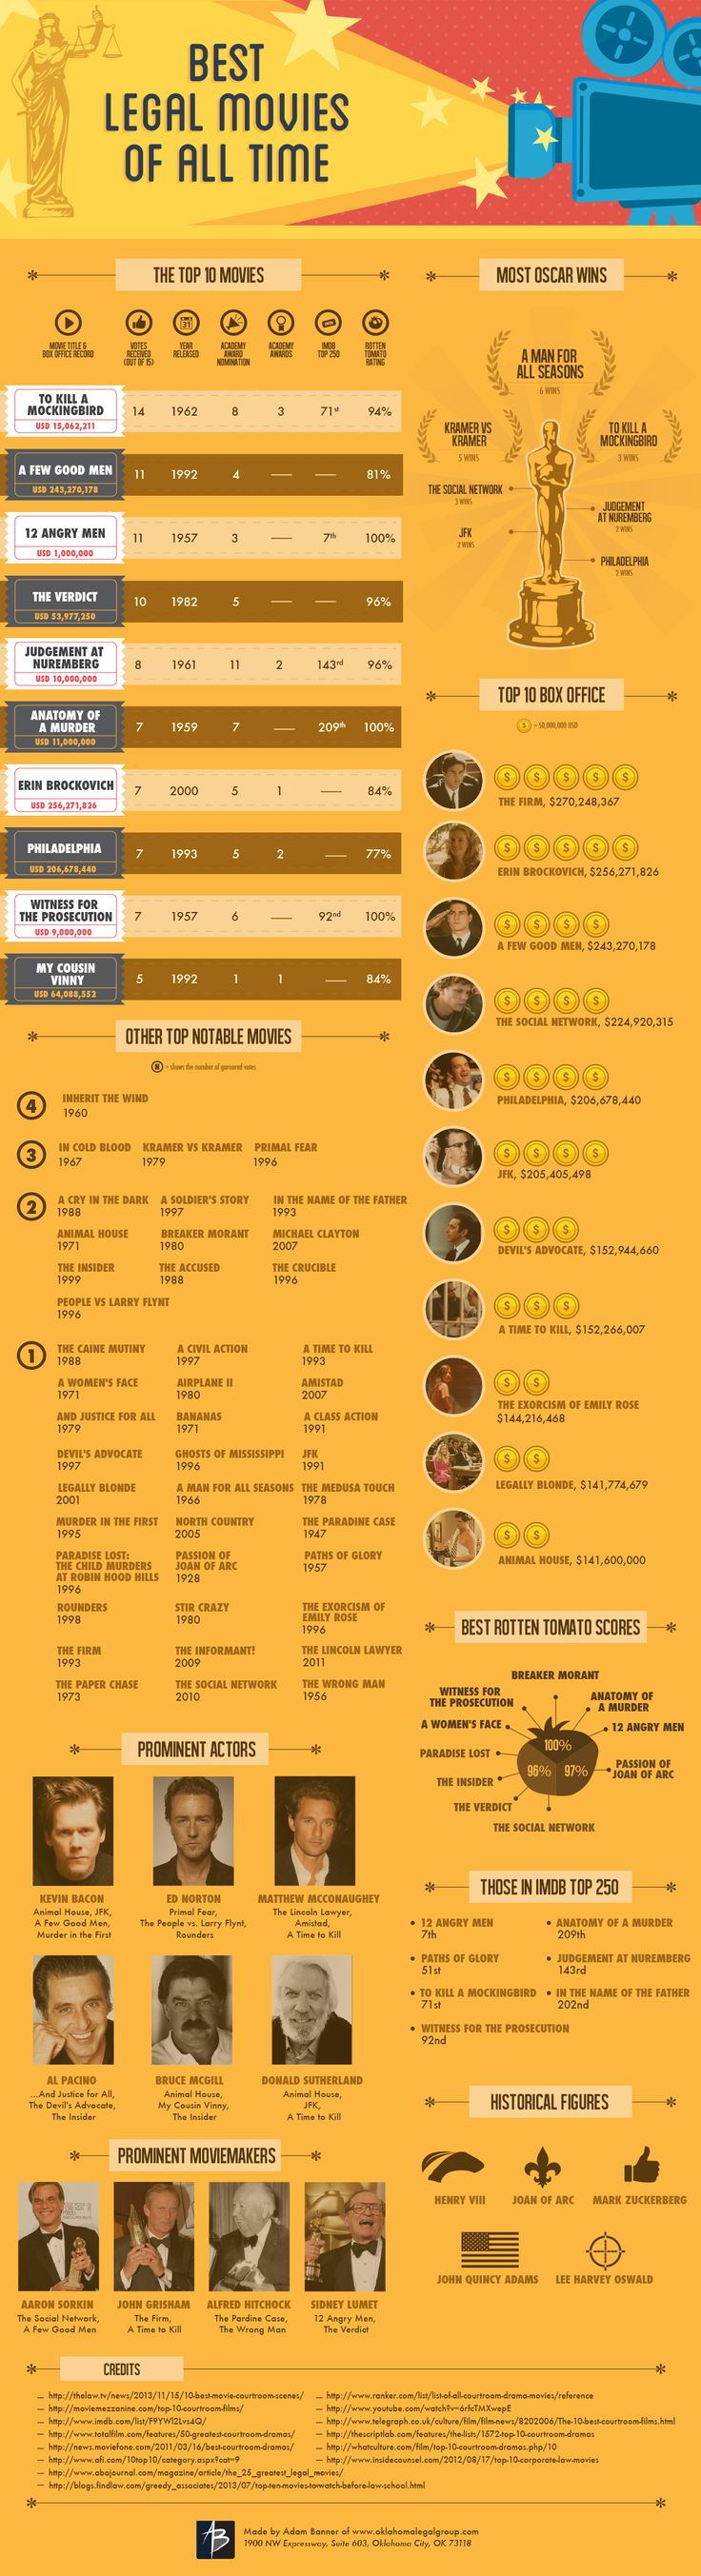 Best Legal Movies Of All Time - Do you fancy an infographic?  There are a lot of them online, but if you want your own please visit http://www.linfografico.com/prezzi/  Online girano molte infografiche, se ne vuoi realizzare una tutta tua visita http://www.linfografico.com/prezzi/